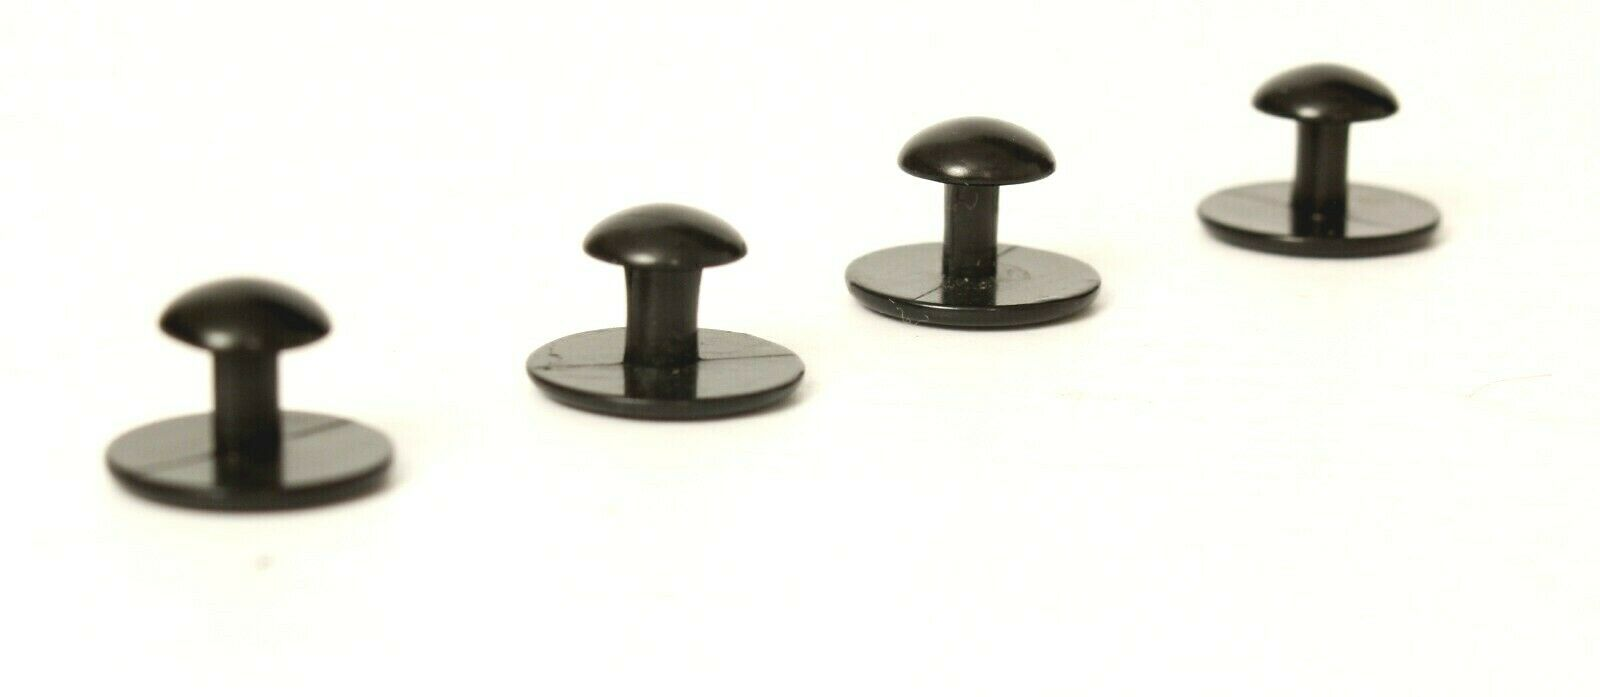 4 Black Tuxedo Studs with Rounded Top